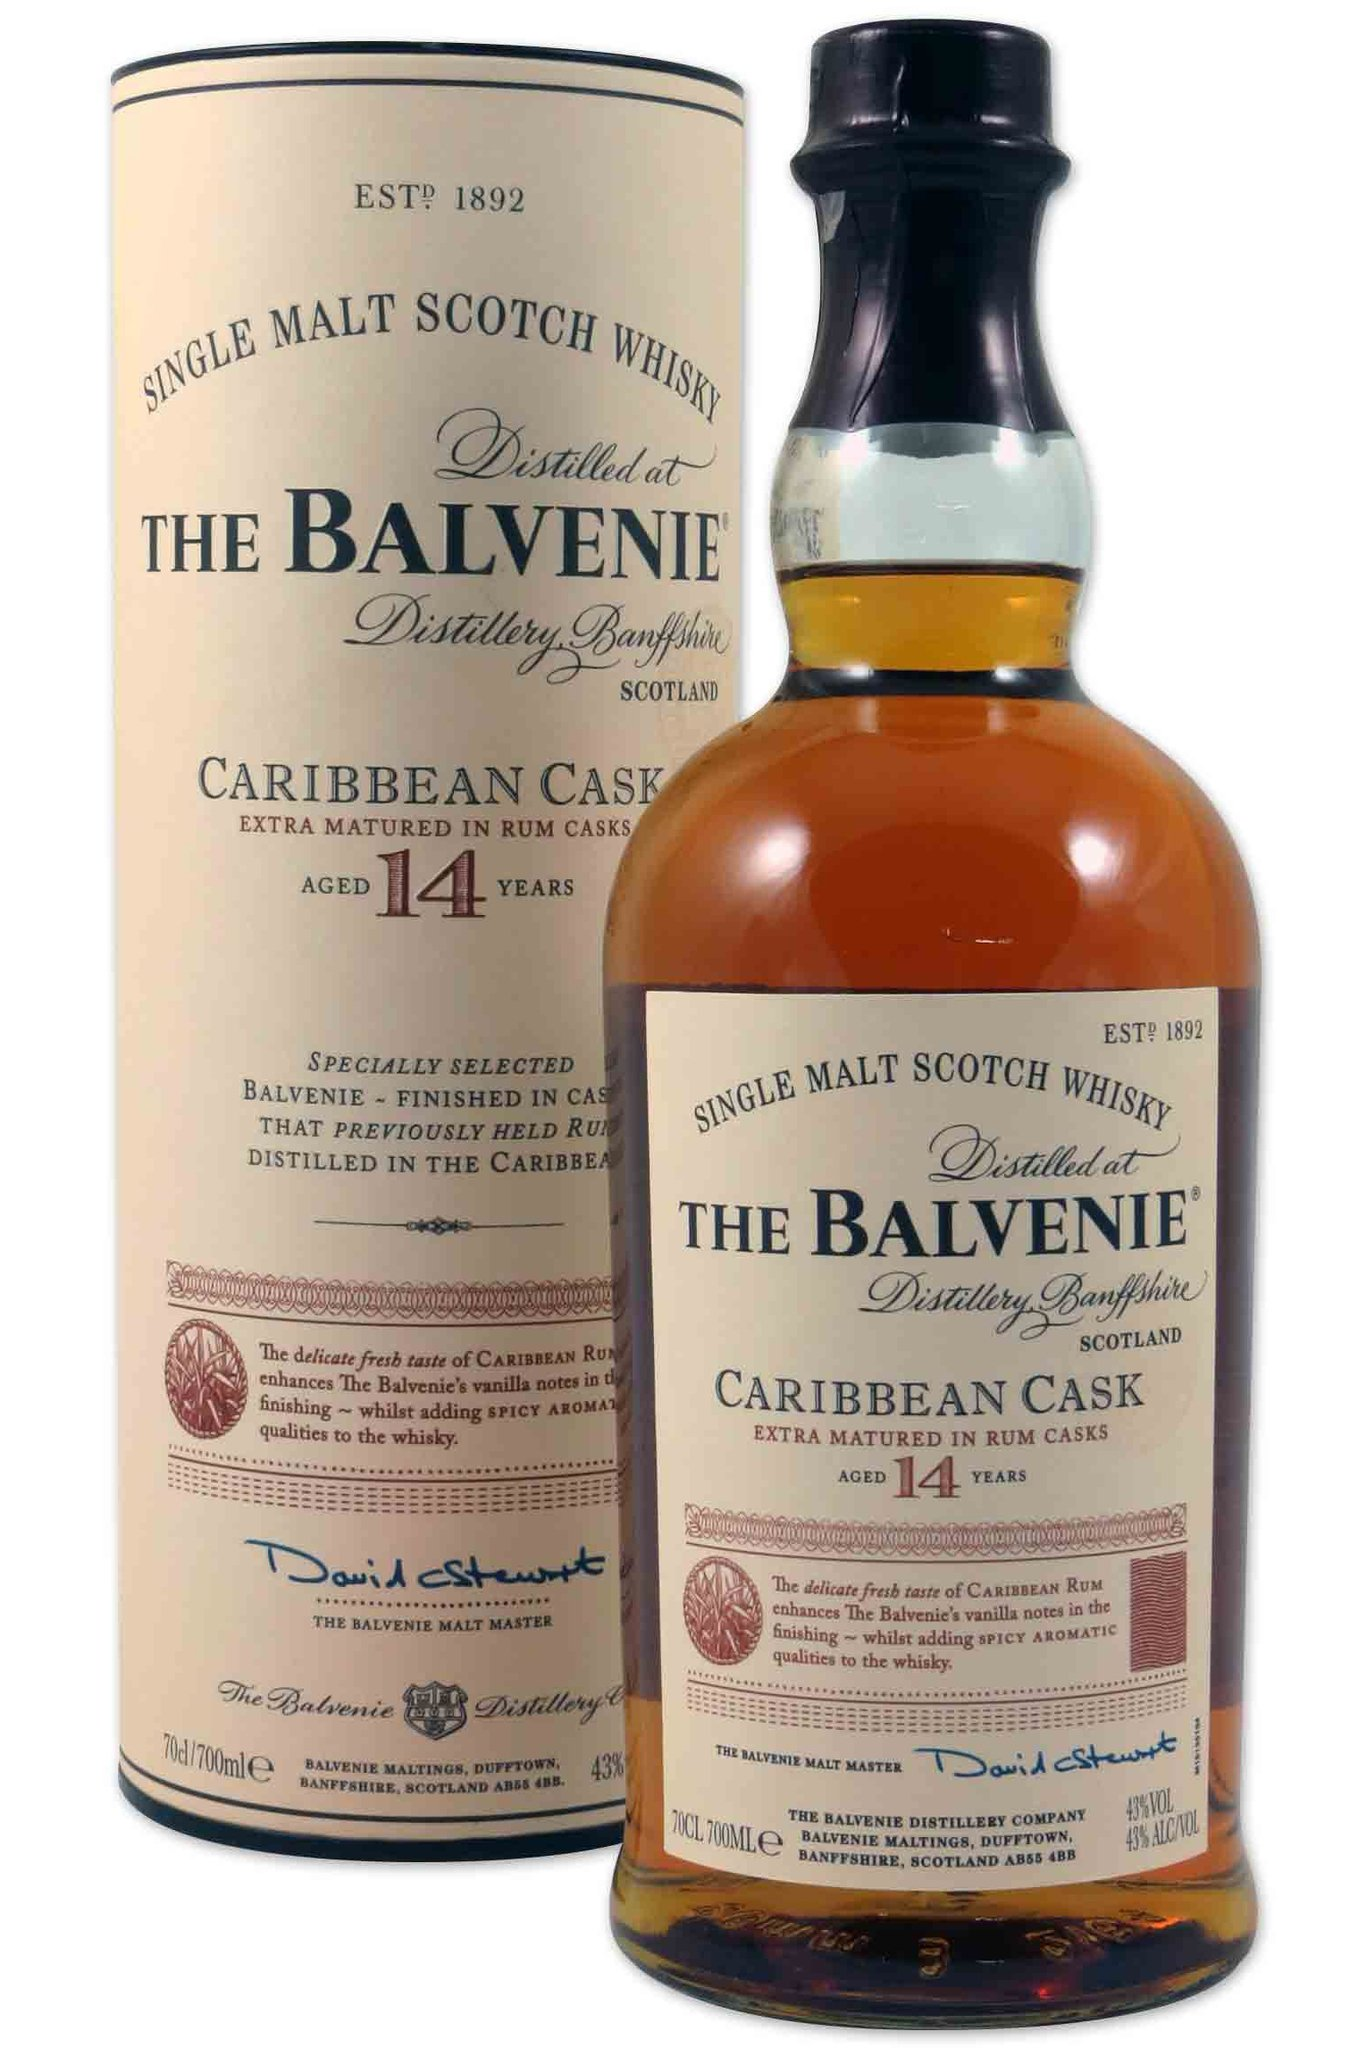 The Balvenie Caribbean Cask 14 Years - 70cl (83320) Detailbild